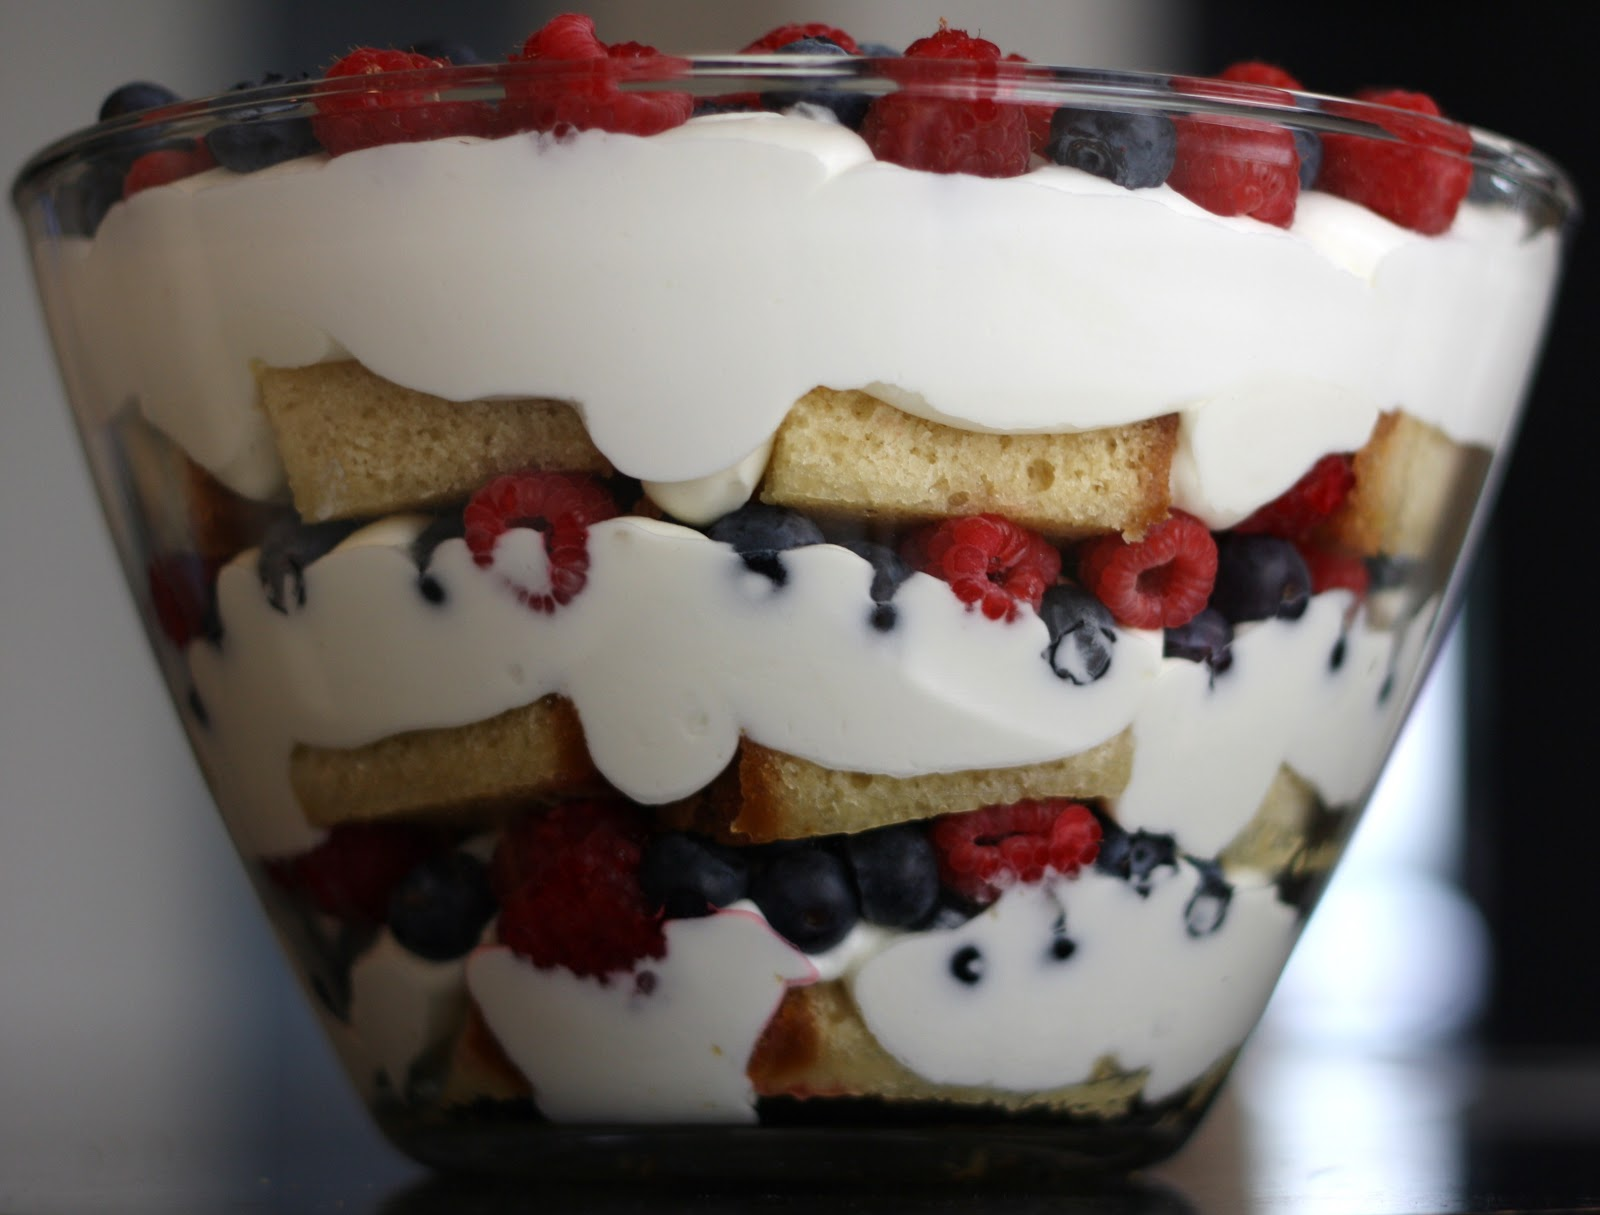 sunday sweets: red, white and blueberry trifle